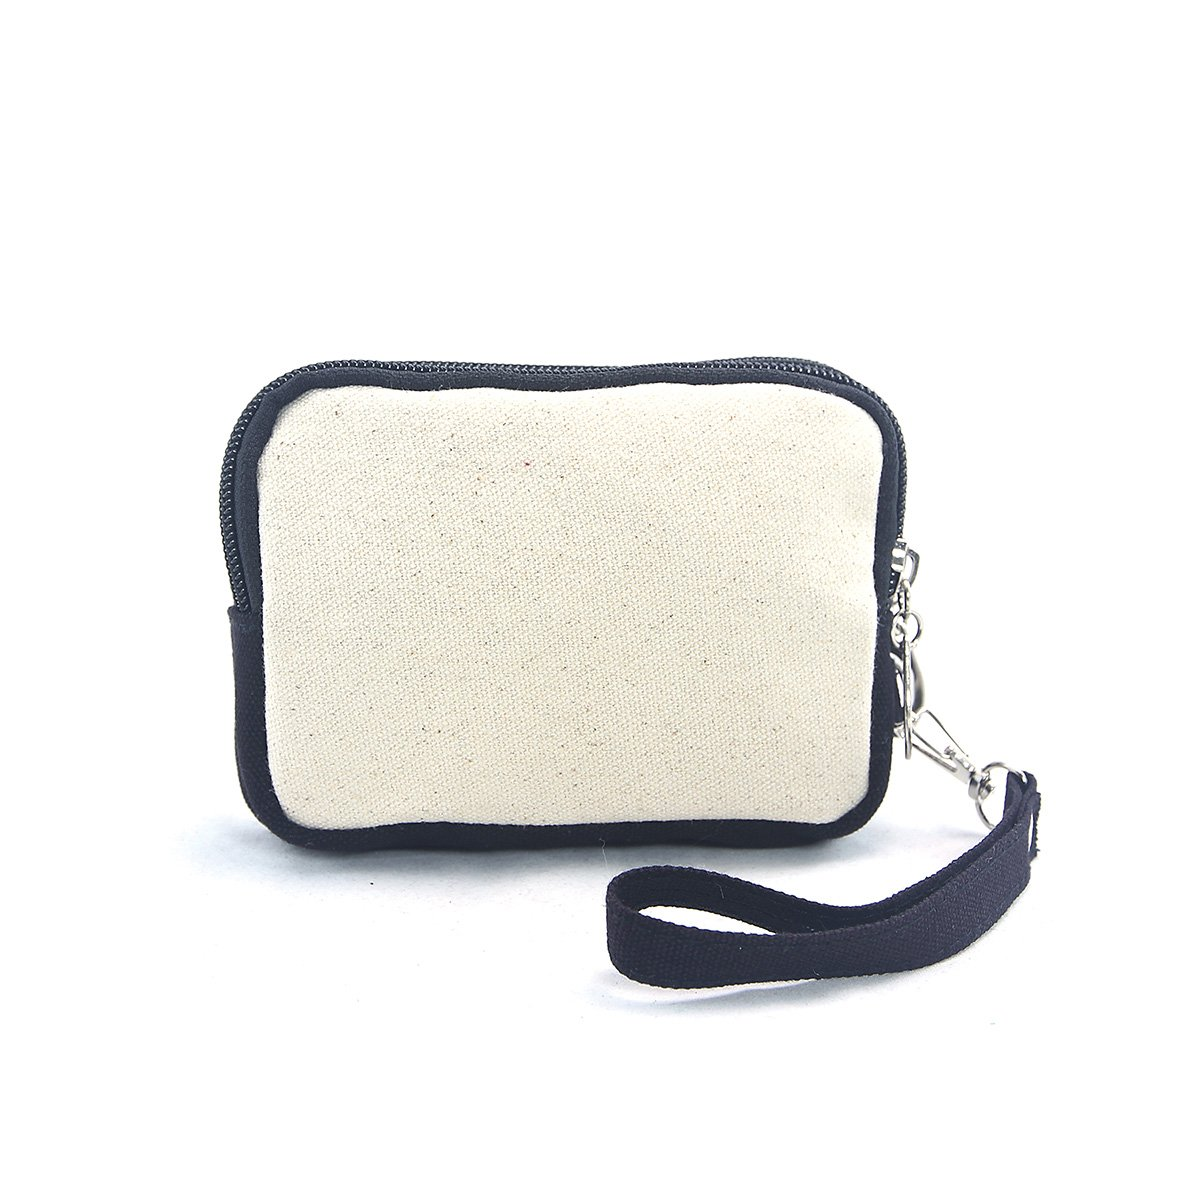 Vintage Print Horse Wristlet in Canvas Material